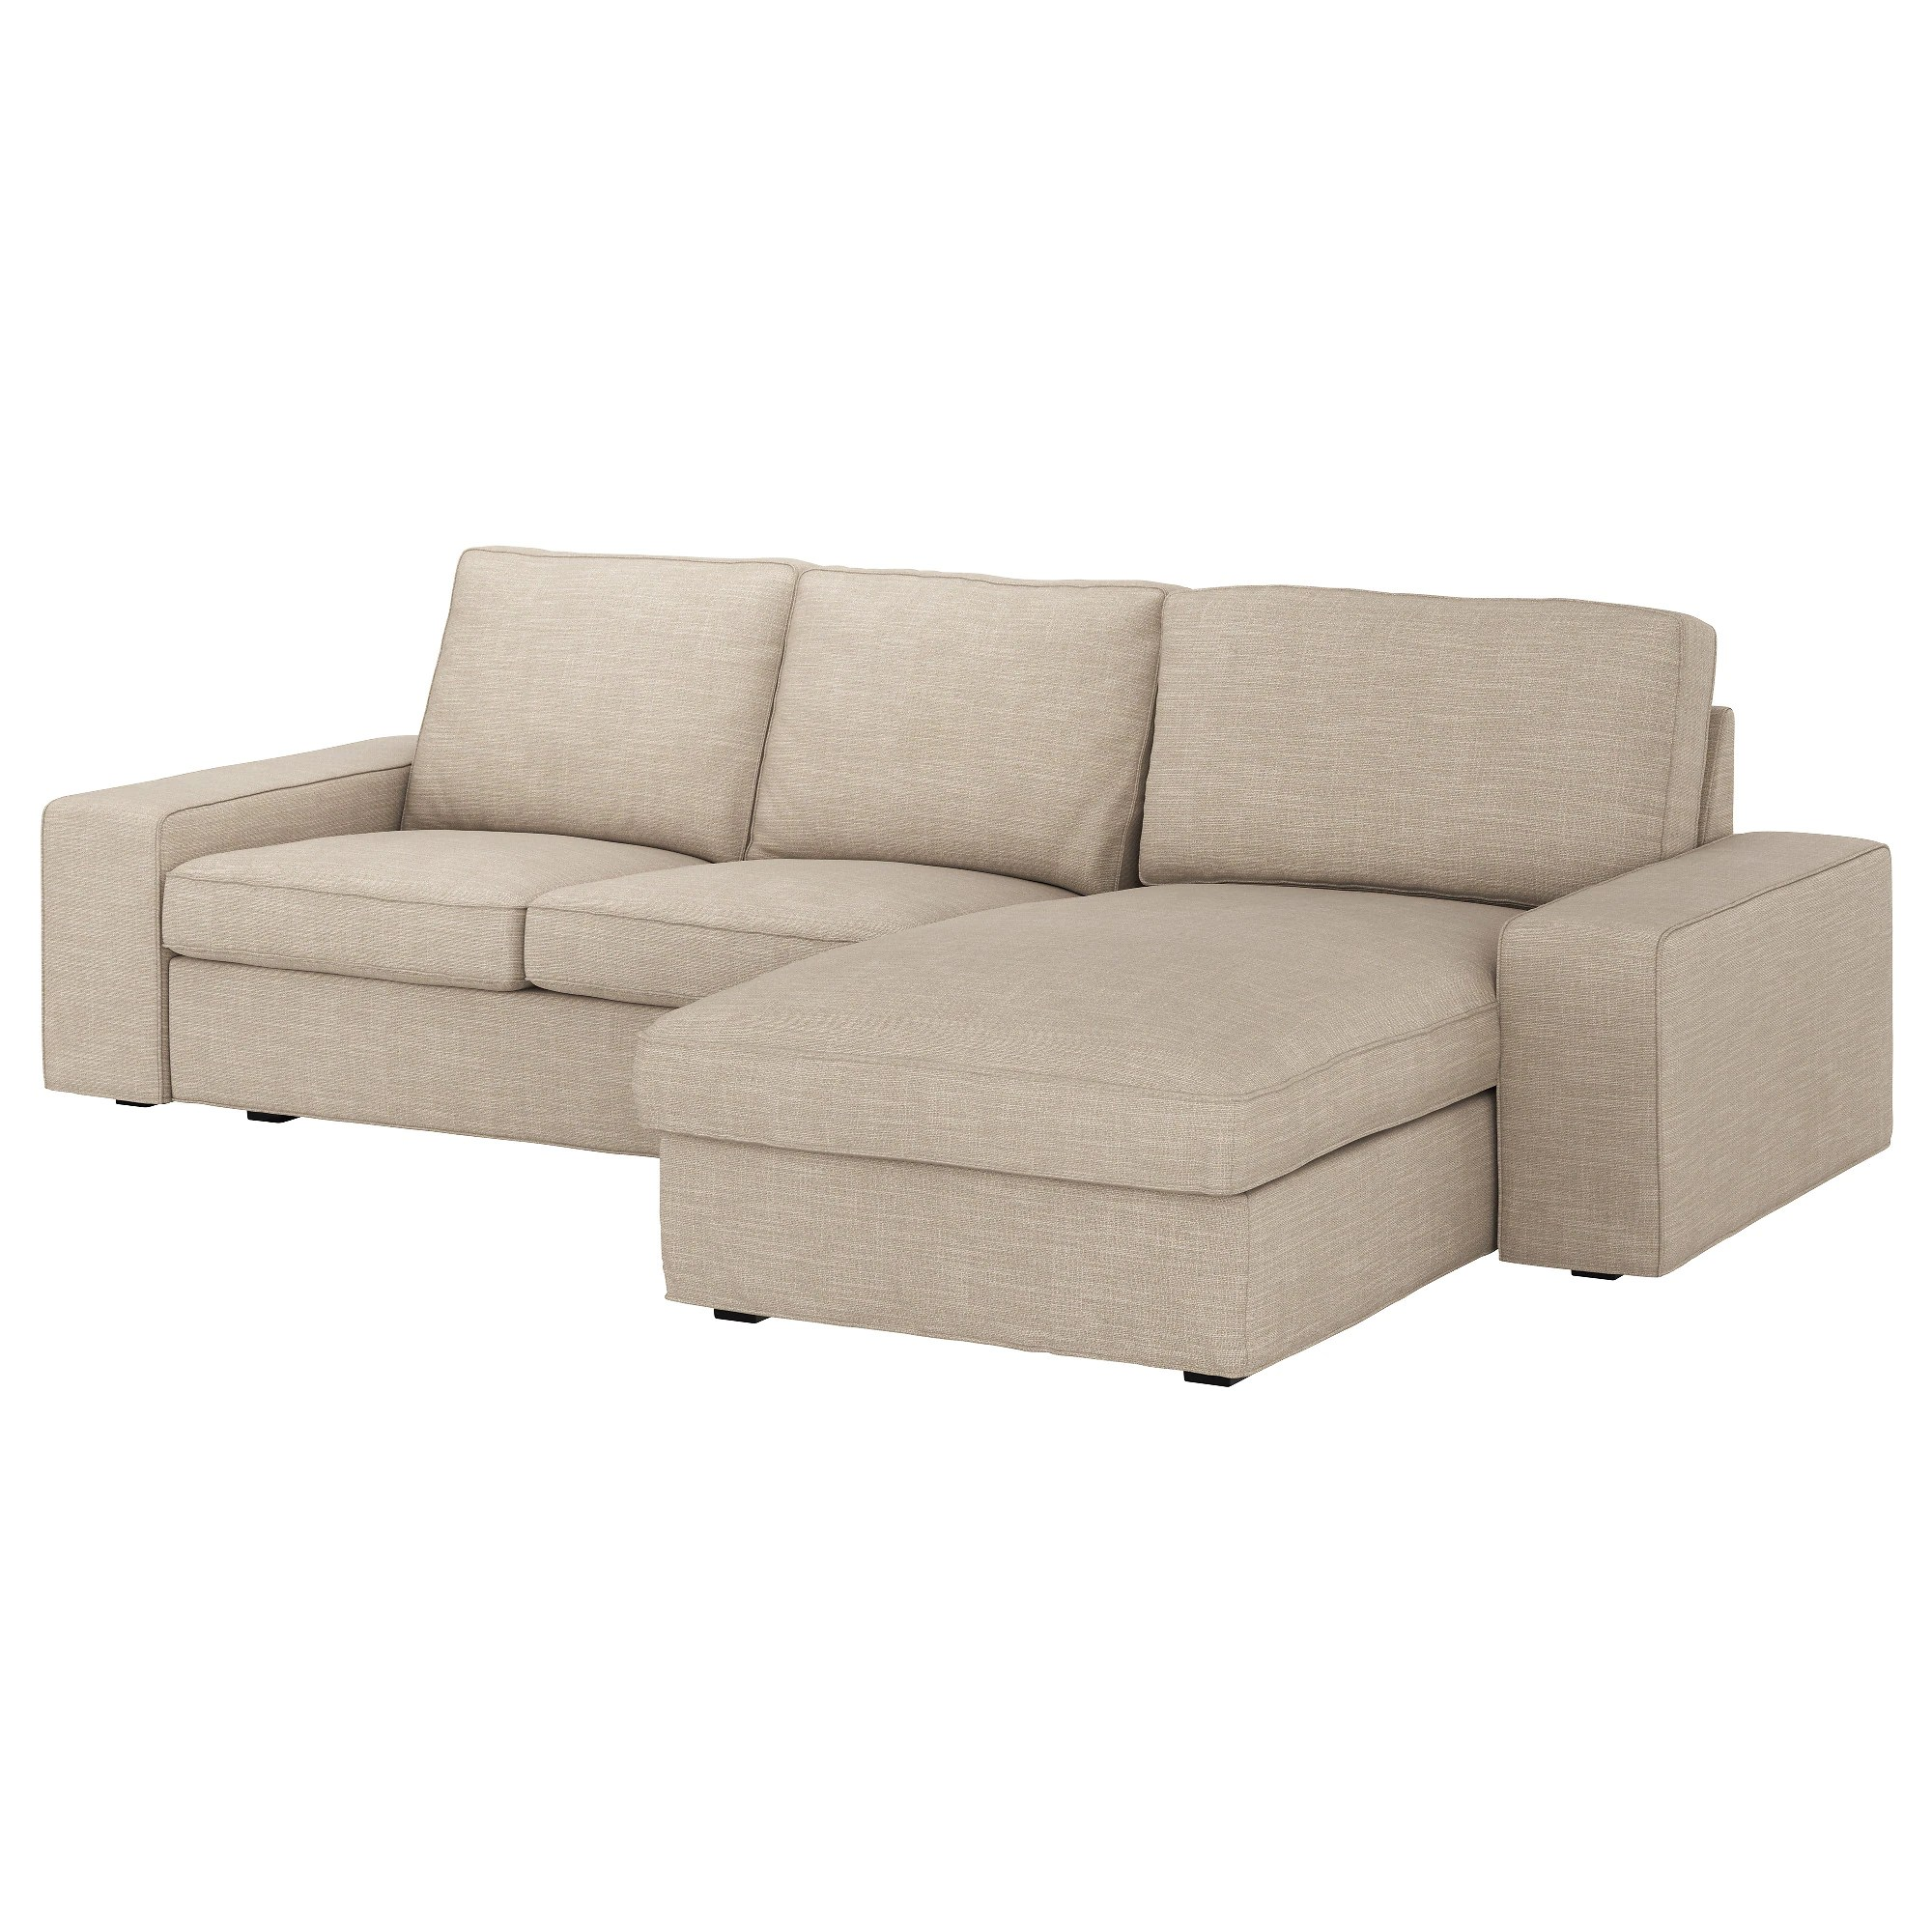 Sofa Ikea Chaise Kivik Sofa Orrsta With Chaise Orrsta Light Gray